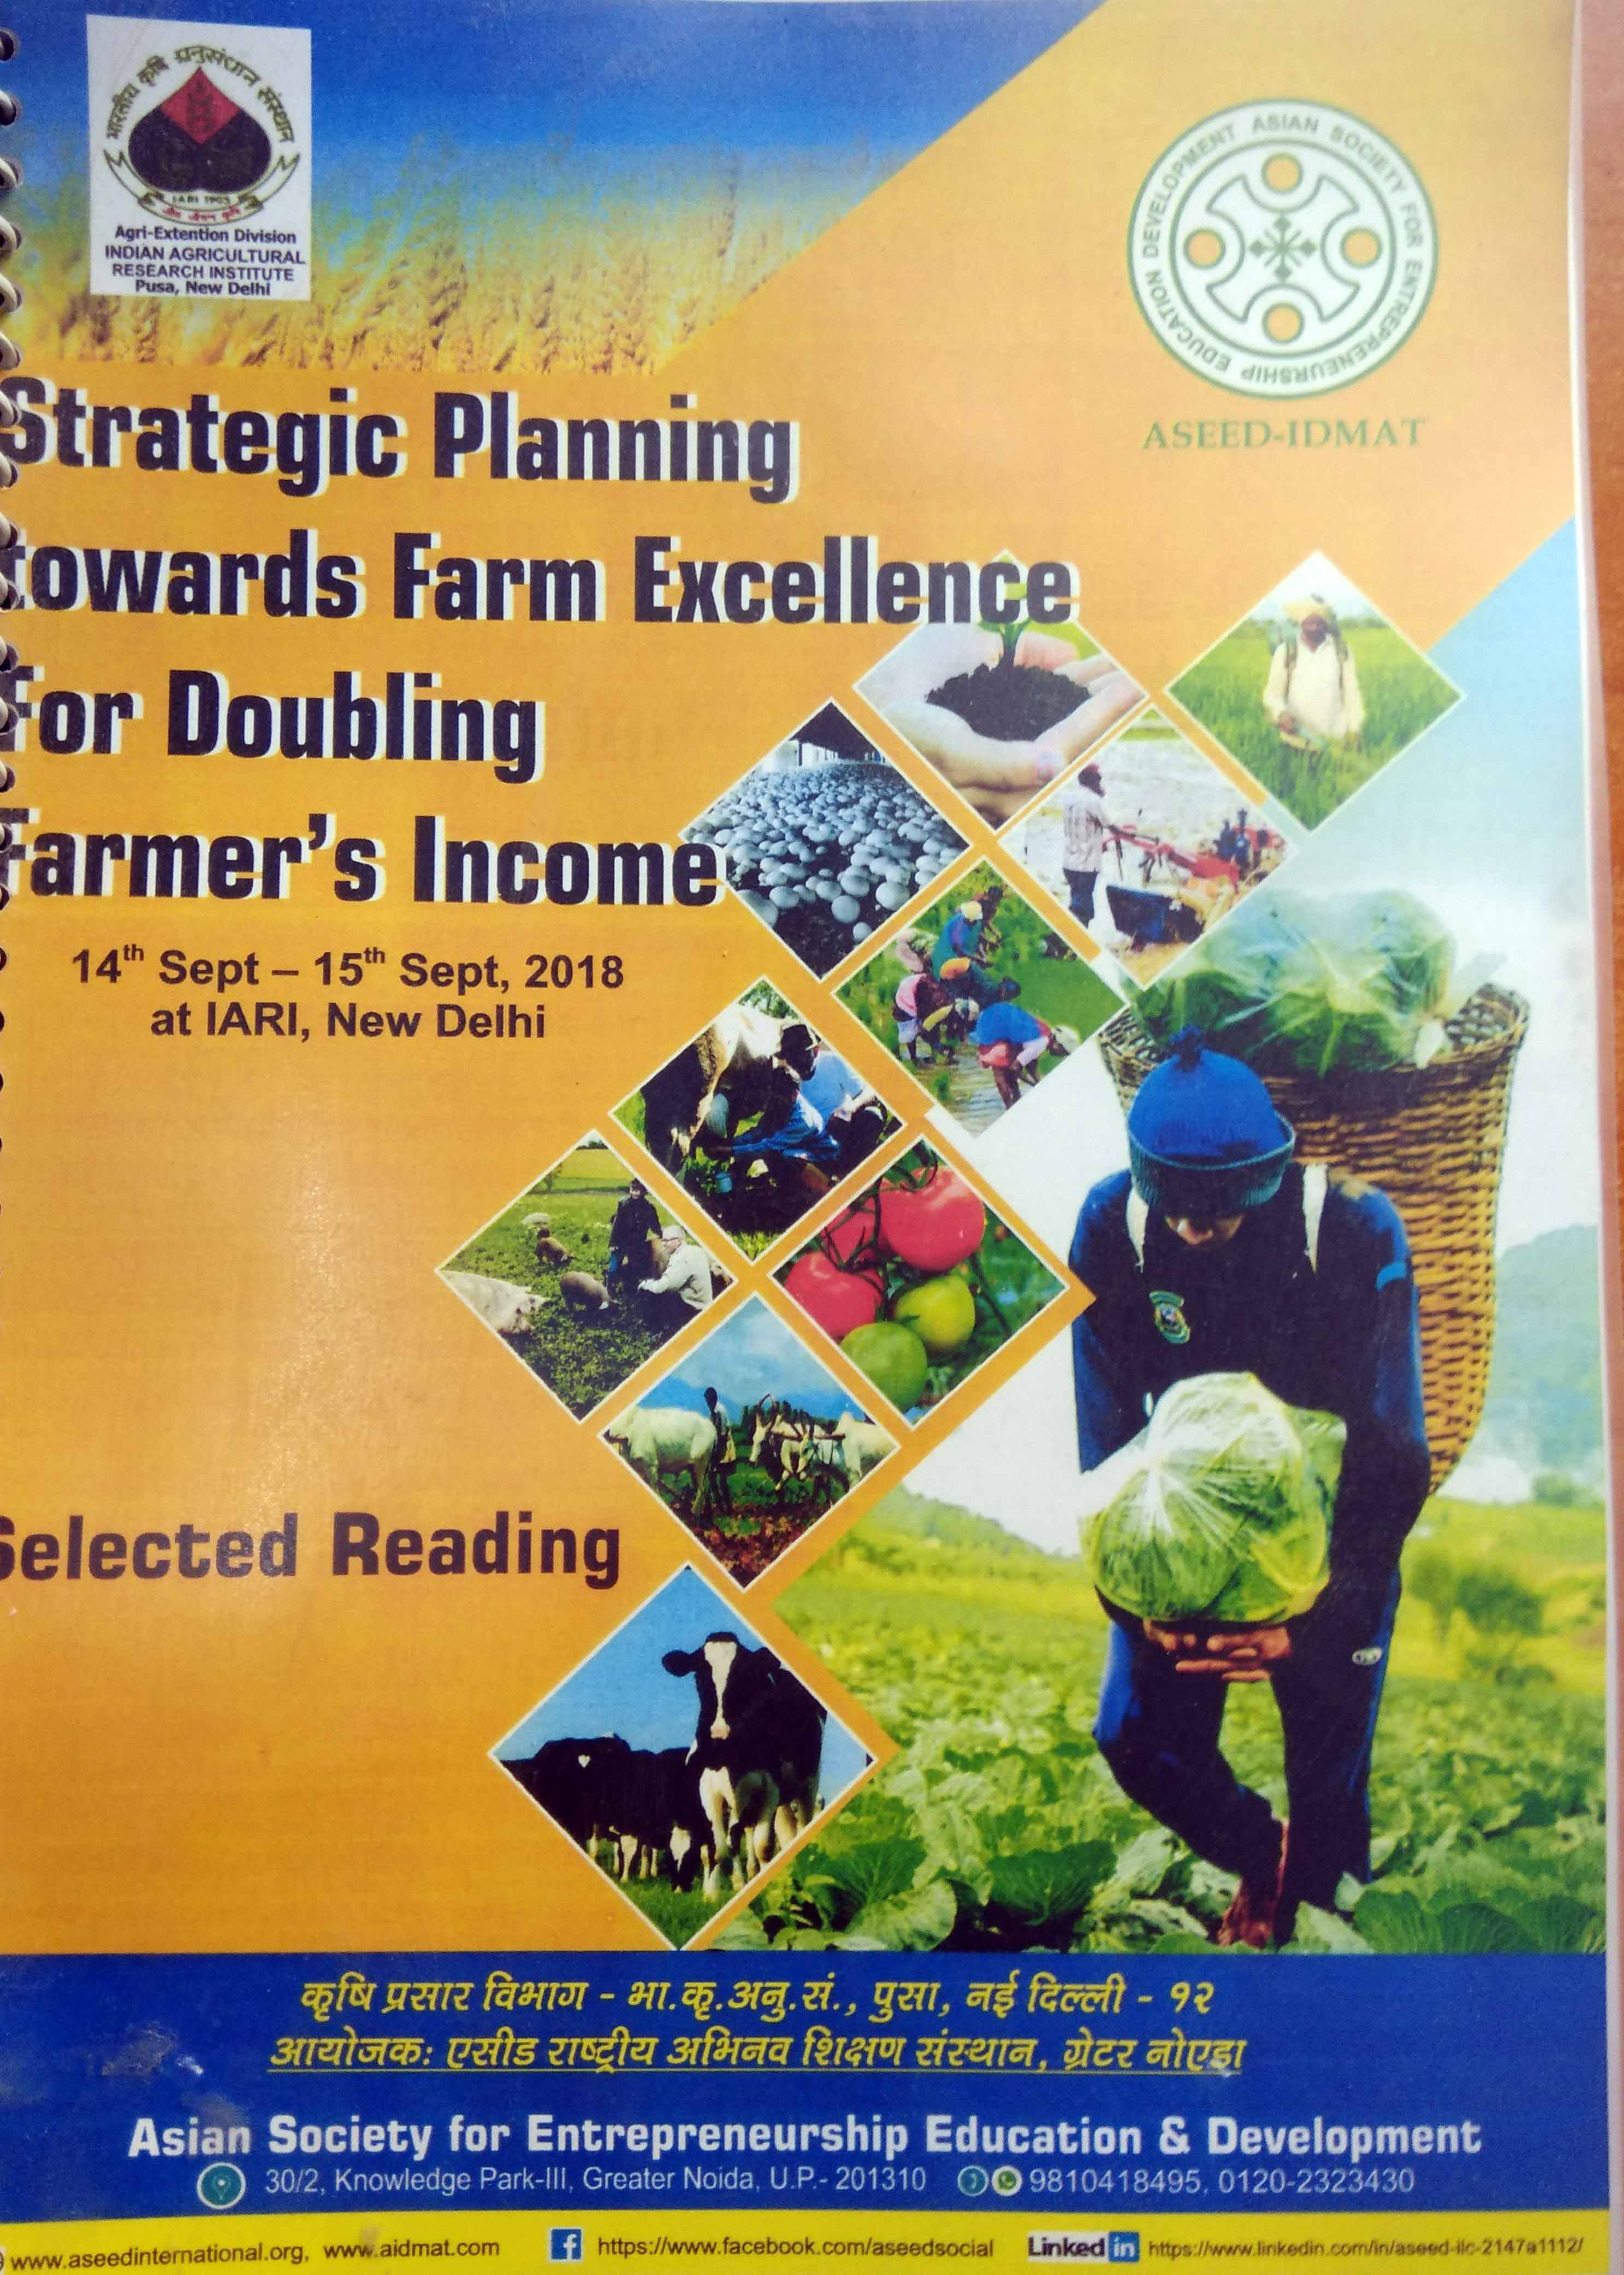 Strategic Planning-Doubling Farmer's Income